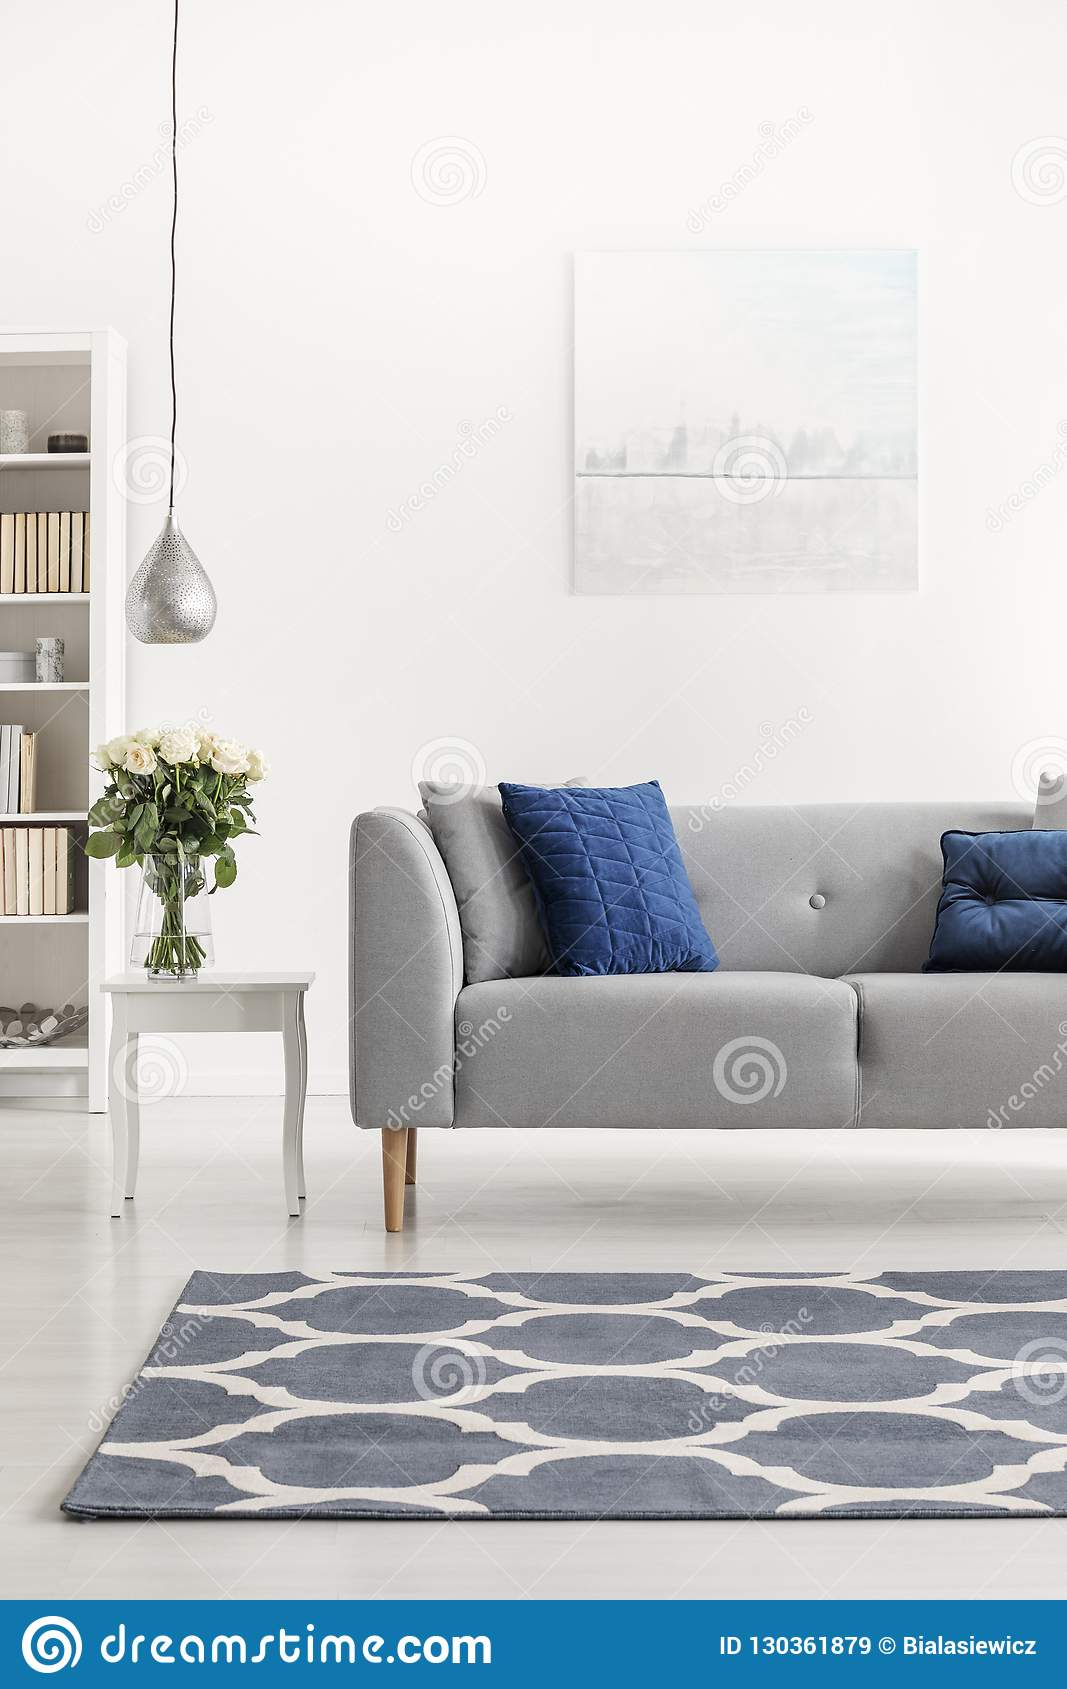 Patterned Carpet In Front Of Grey Couch With Blue Pillows In